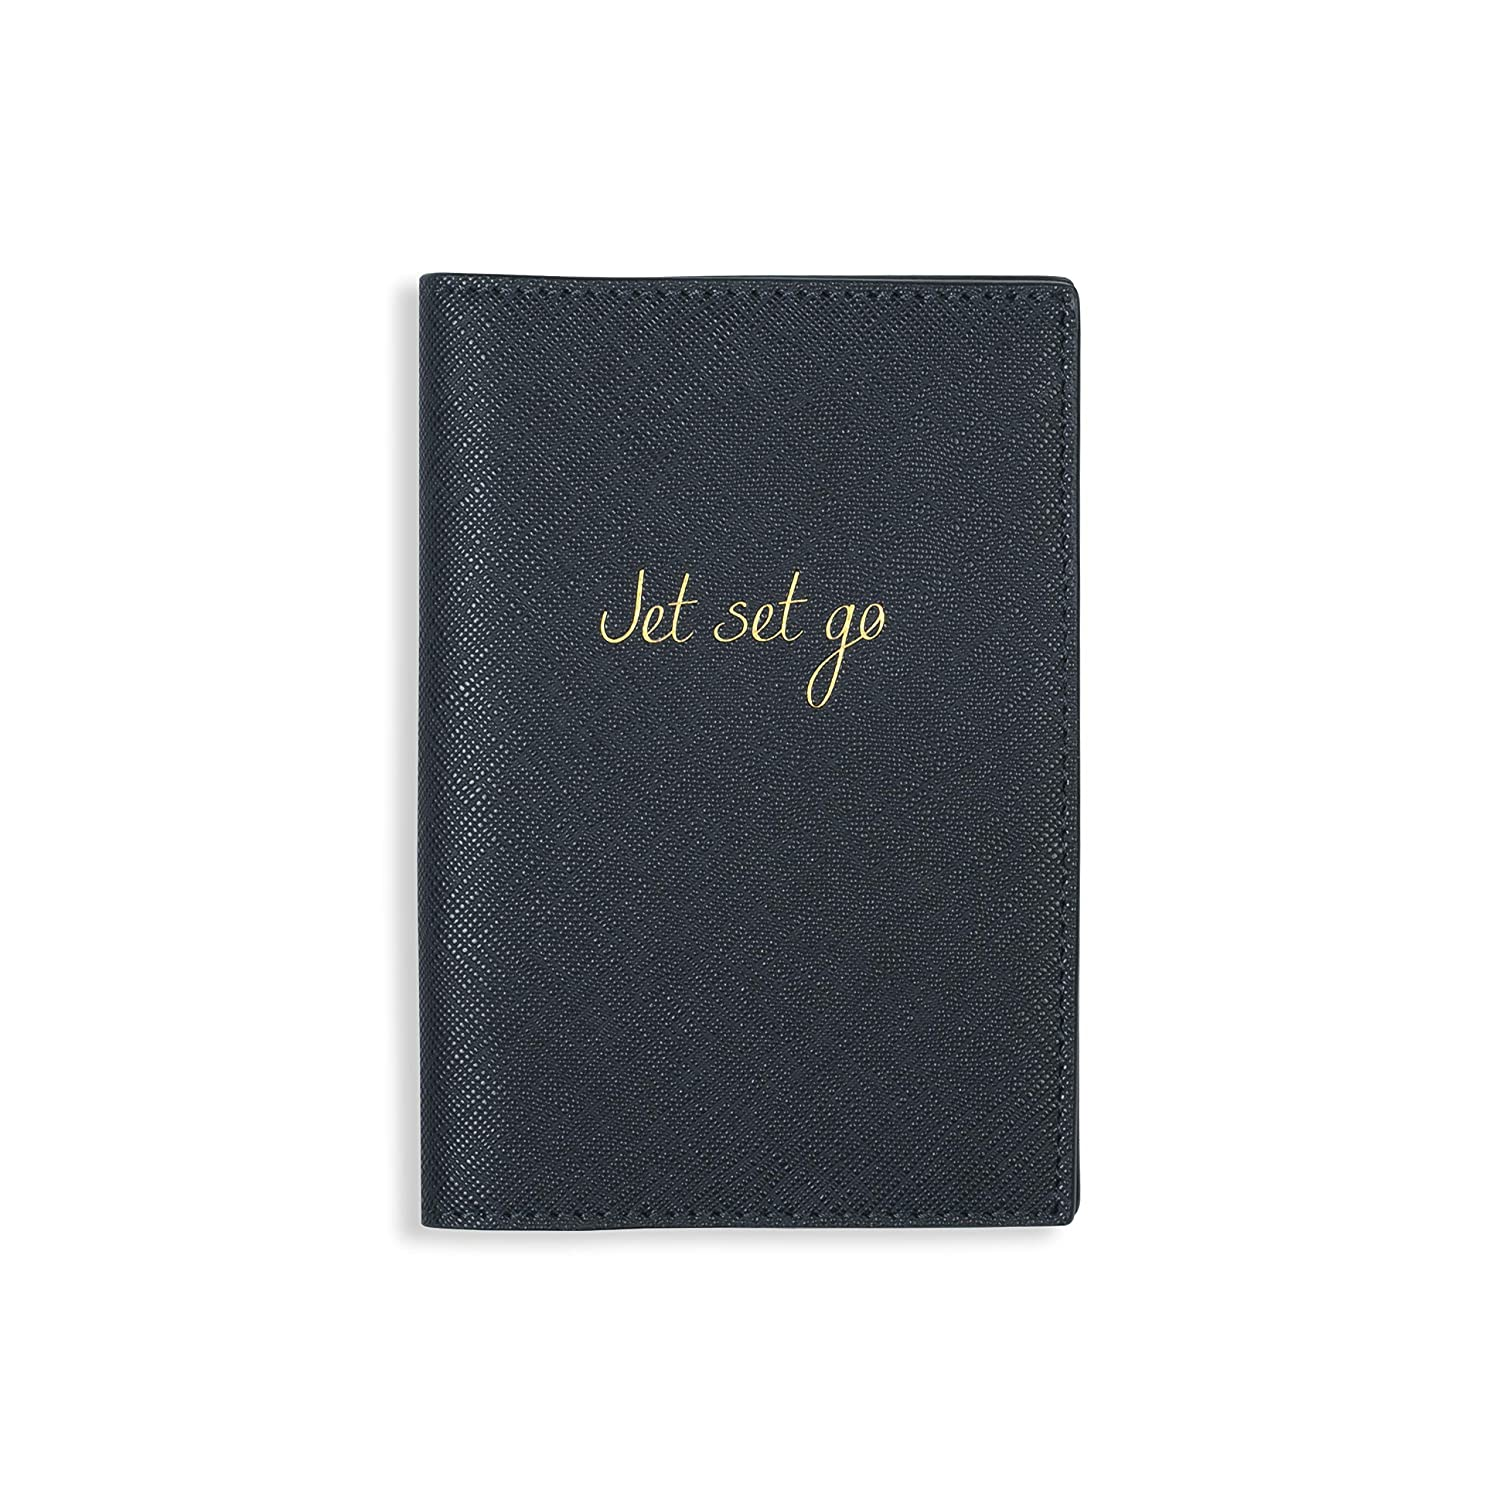 14.5x10cm Passport Holder Jet Set Go Katie Loxton Navy